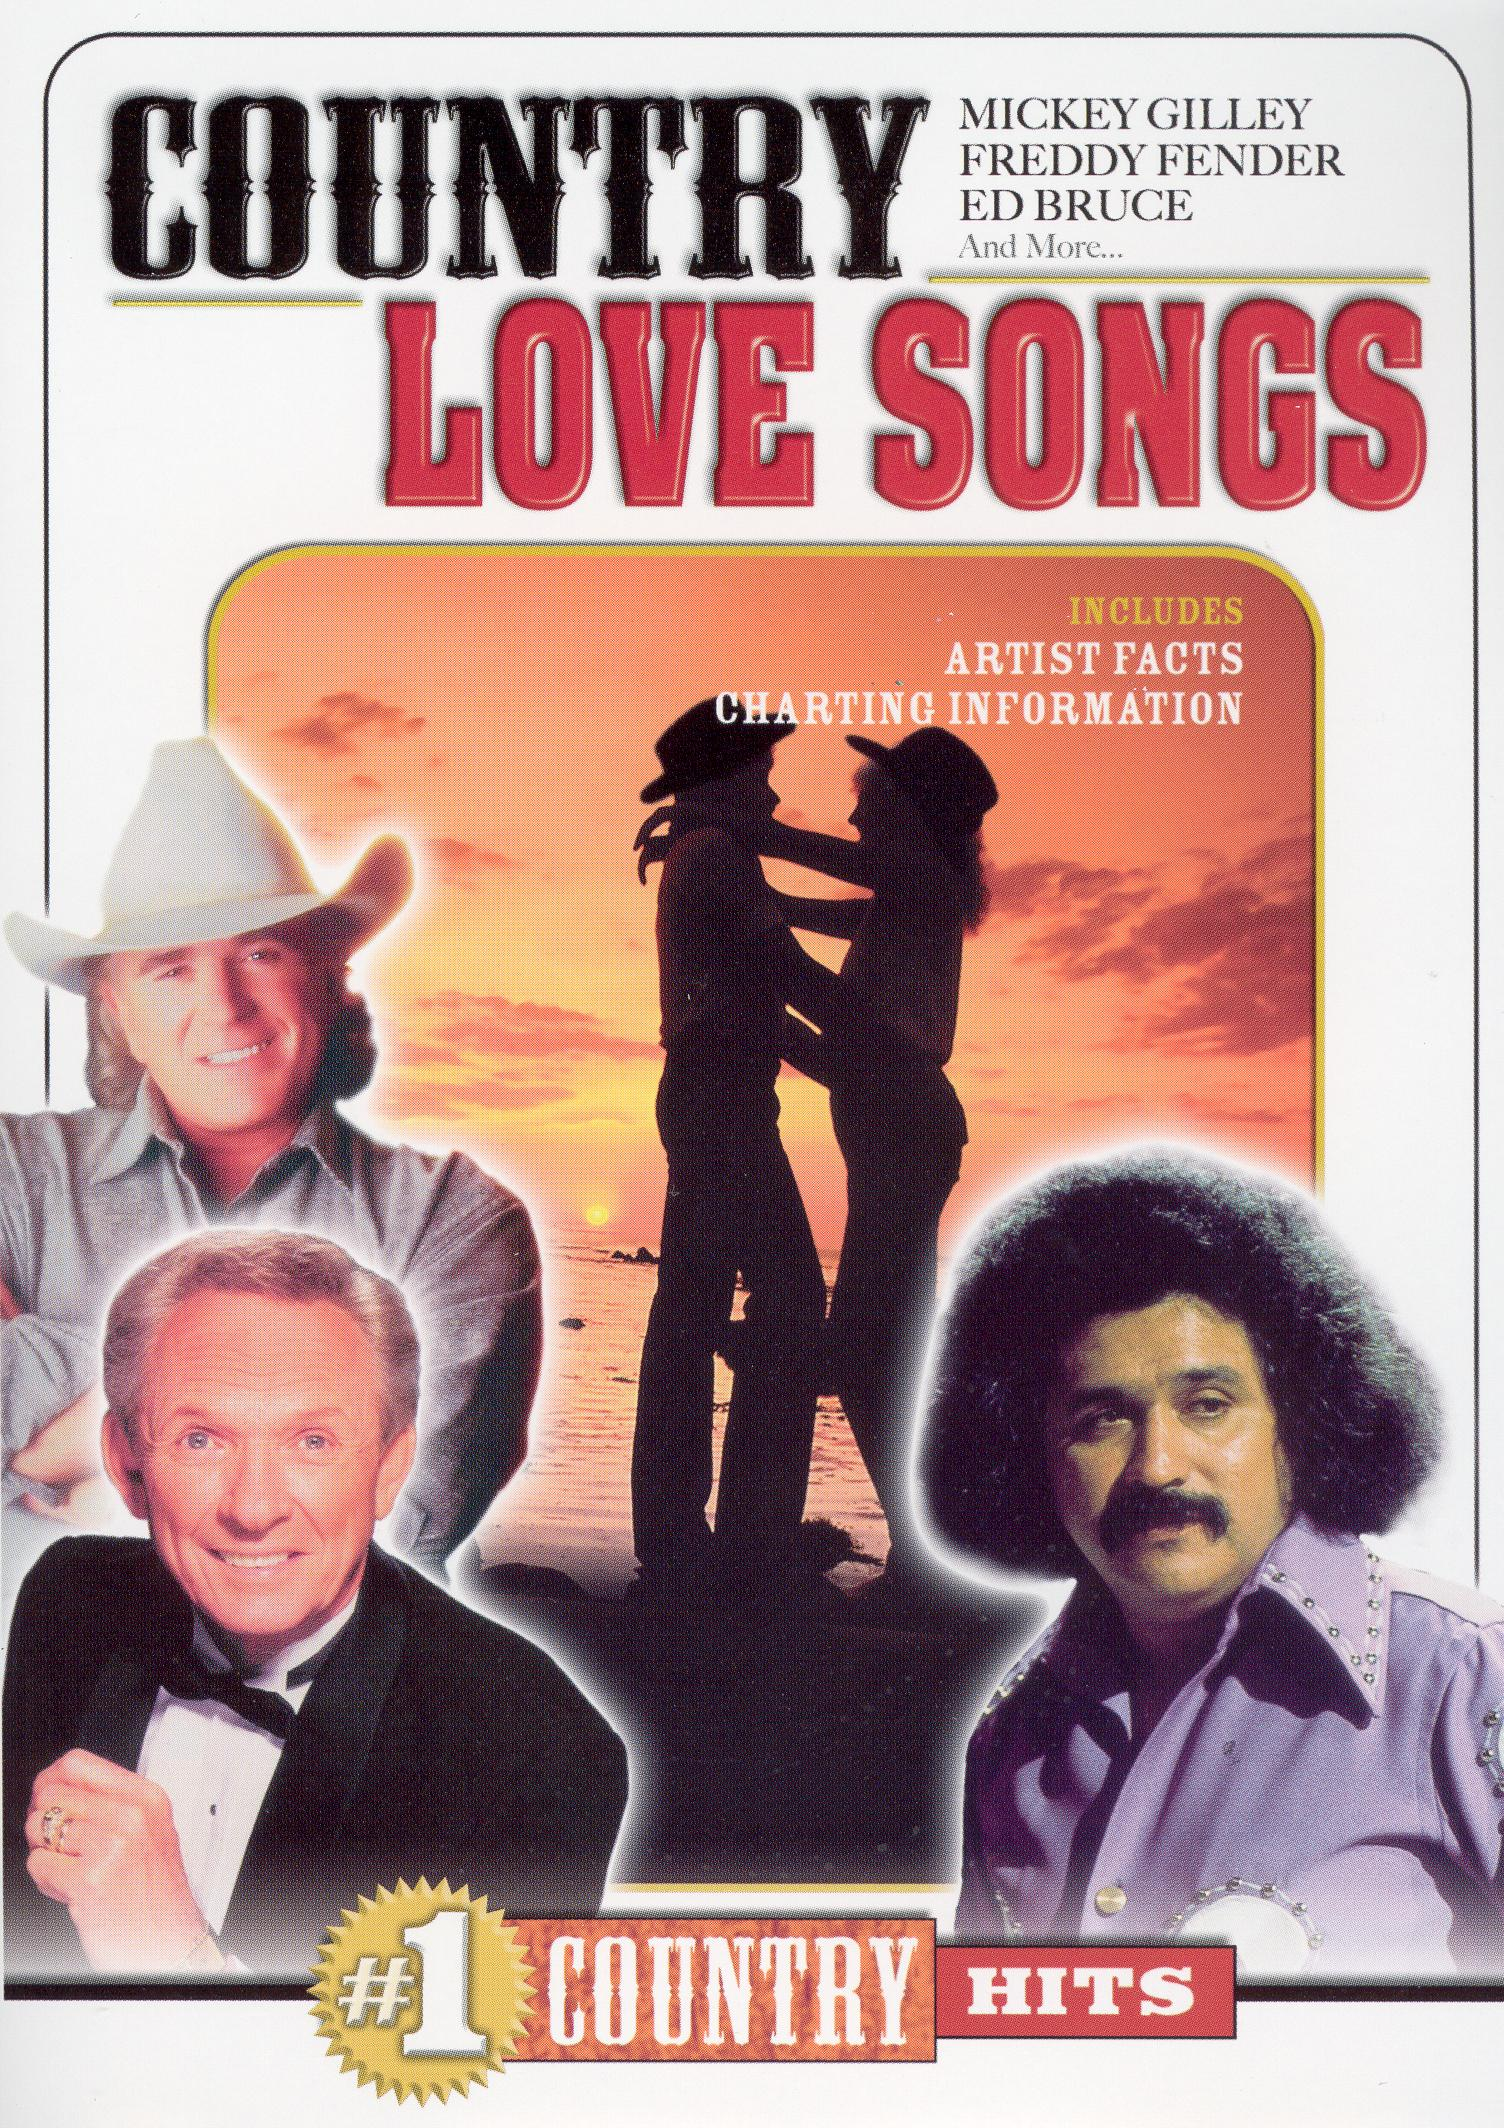 Country #1 Hits: Country Love Songs